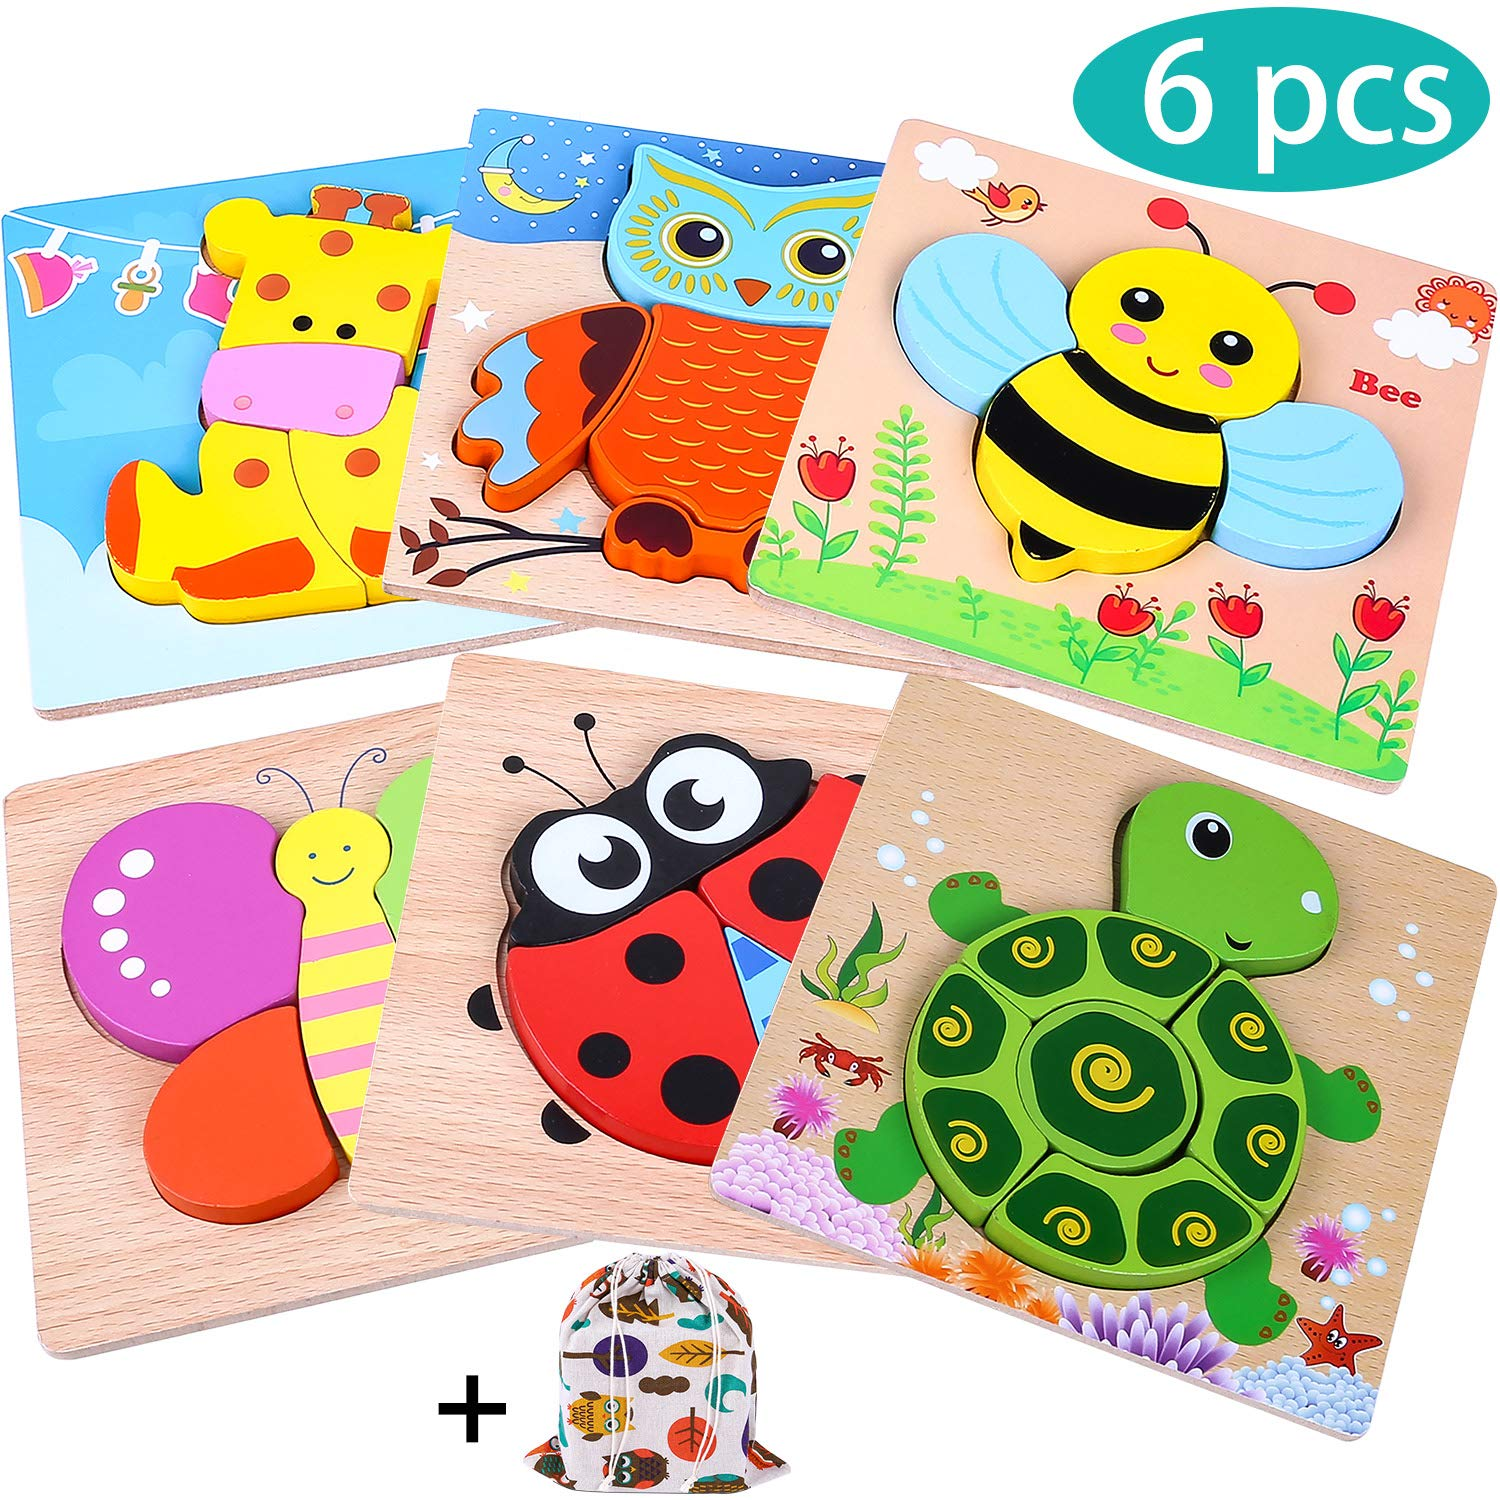 INNOCHEER Wooden Animal Jigsaw Puzzles for Toddlers 1 2 3 4 Years Old, Educational Toys Gift with 6 Pcs Chunky Bright Vibrant Color Shapes Lovely Animal, Extra Drawstring Bag for Easy Storage by INNOCHEER